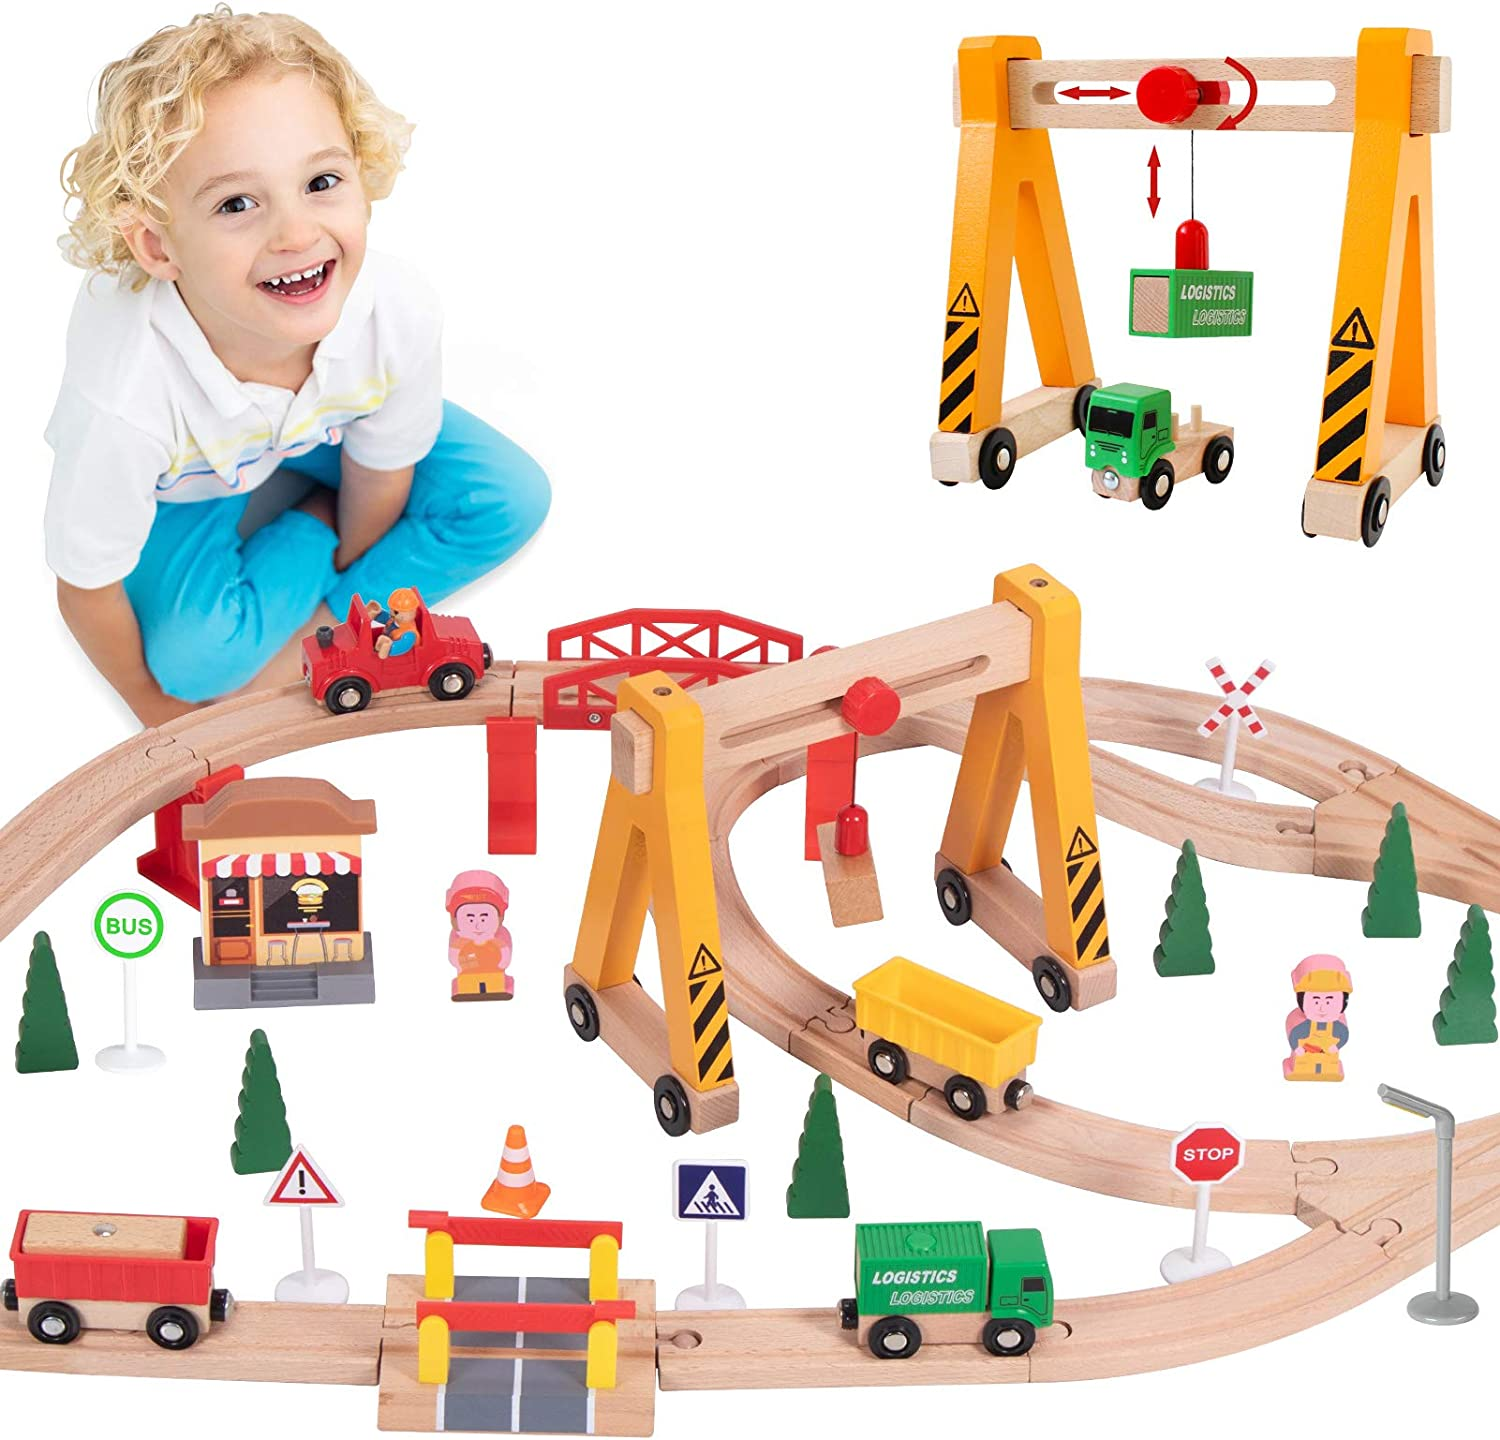 Lebze Toy Train Set for Max 65% OFF Toddlers Sale Special Price Tr - Pieces Wooden 55